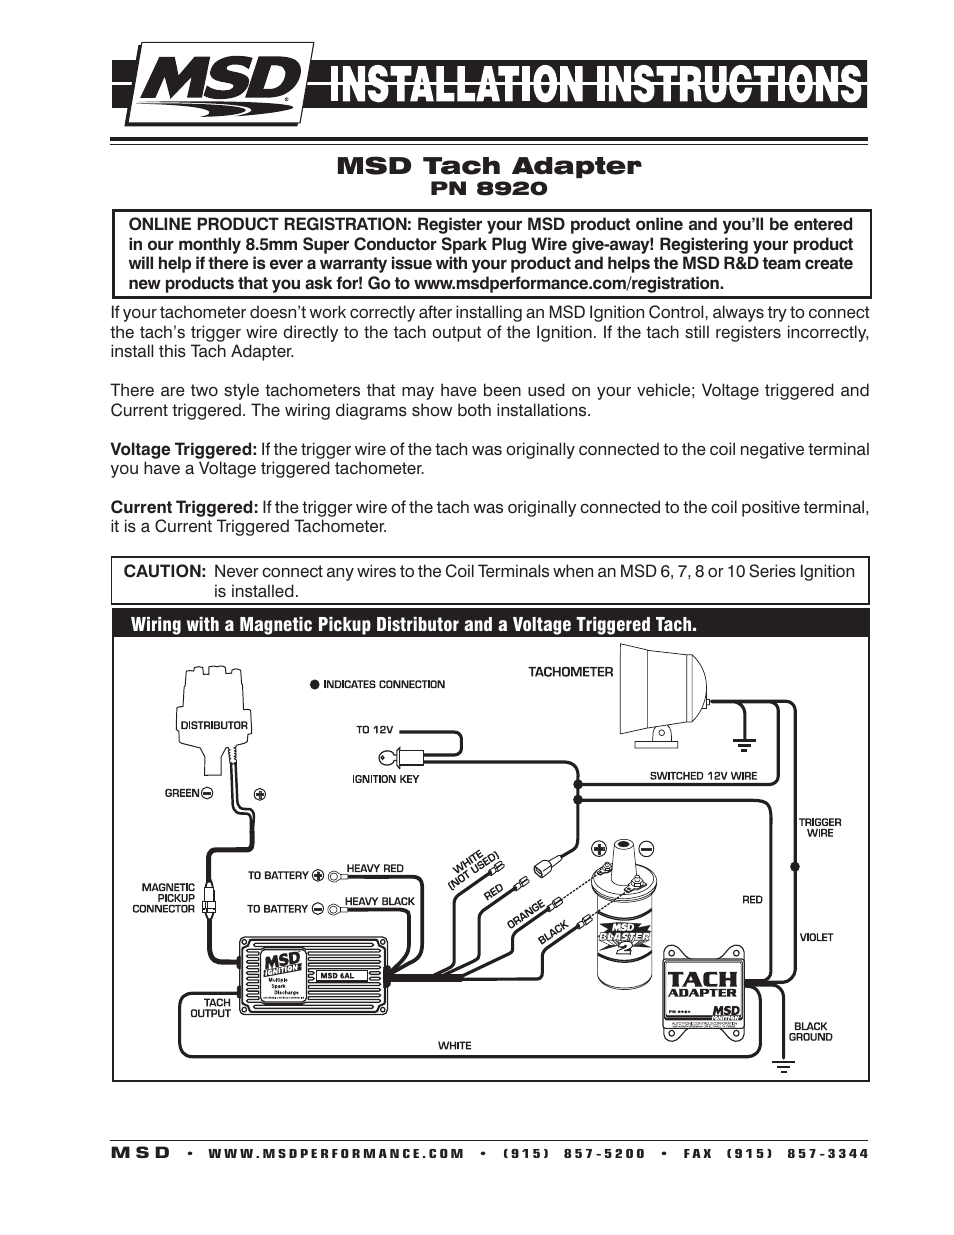 msd 8920 tach adapter wiring diagram auto electrical wiring diagram msd tachometer  wiring diagram msd 8920